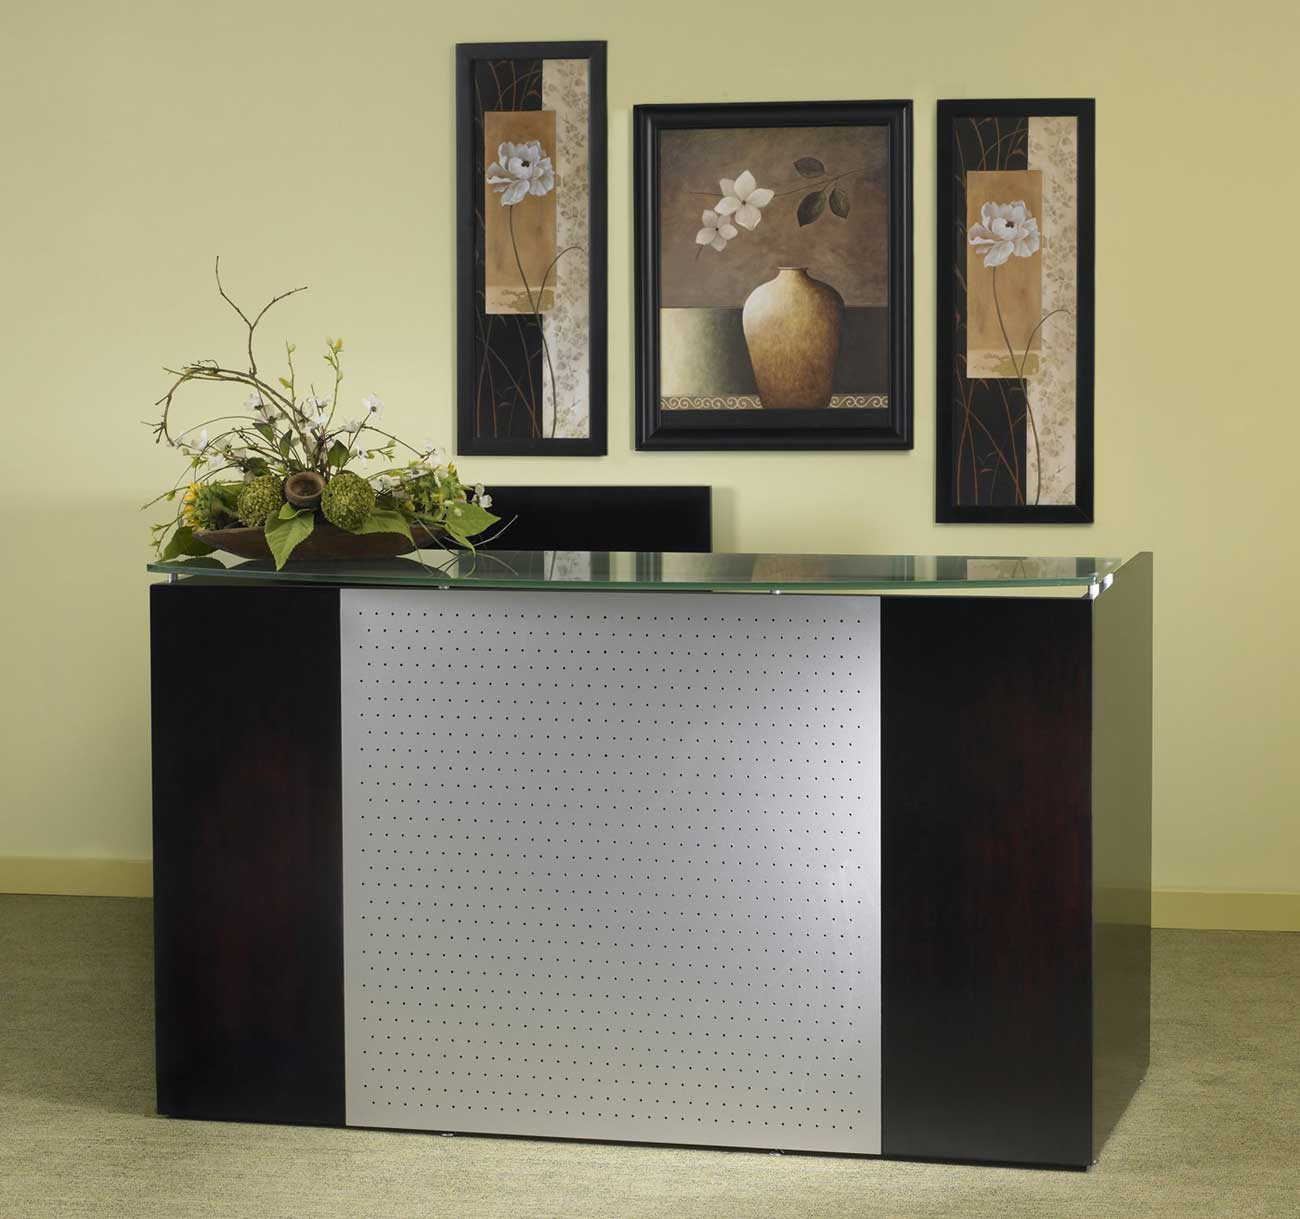 sorrento reception desk furniture design